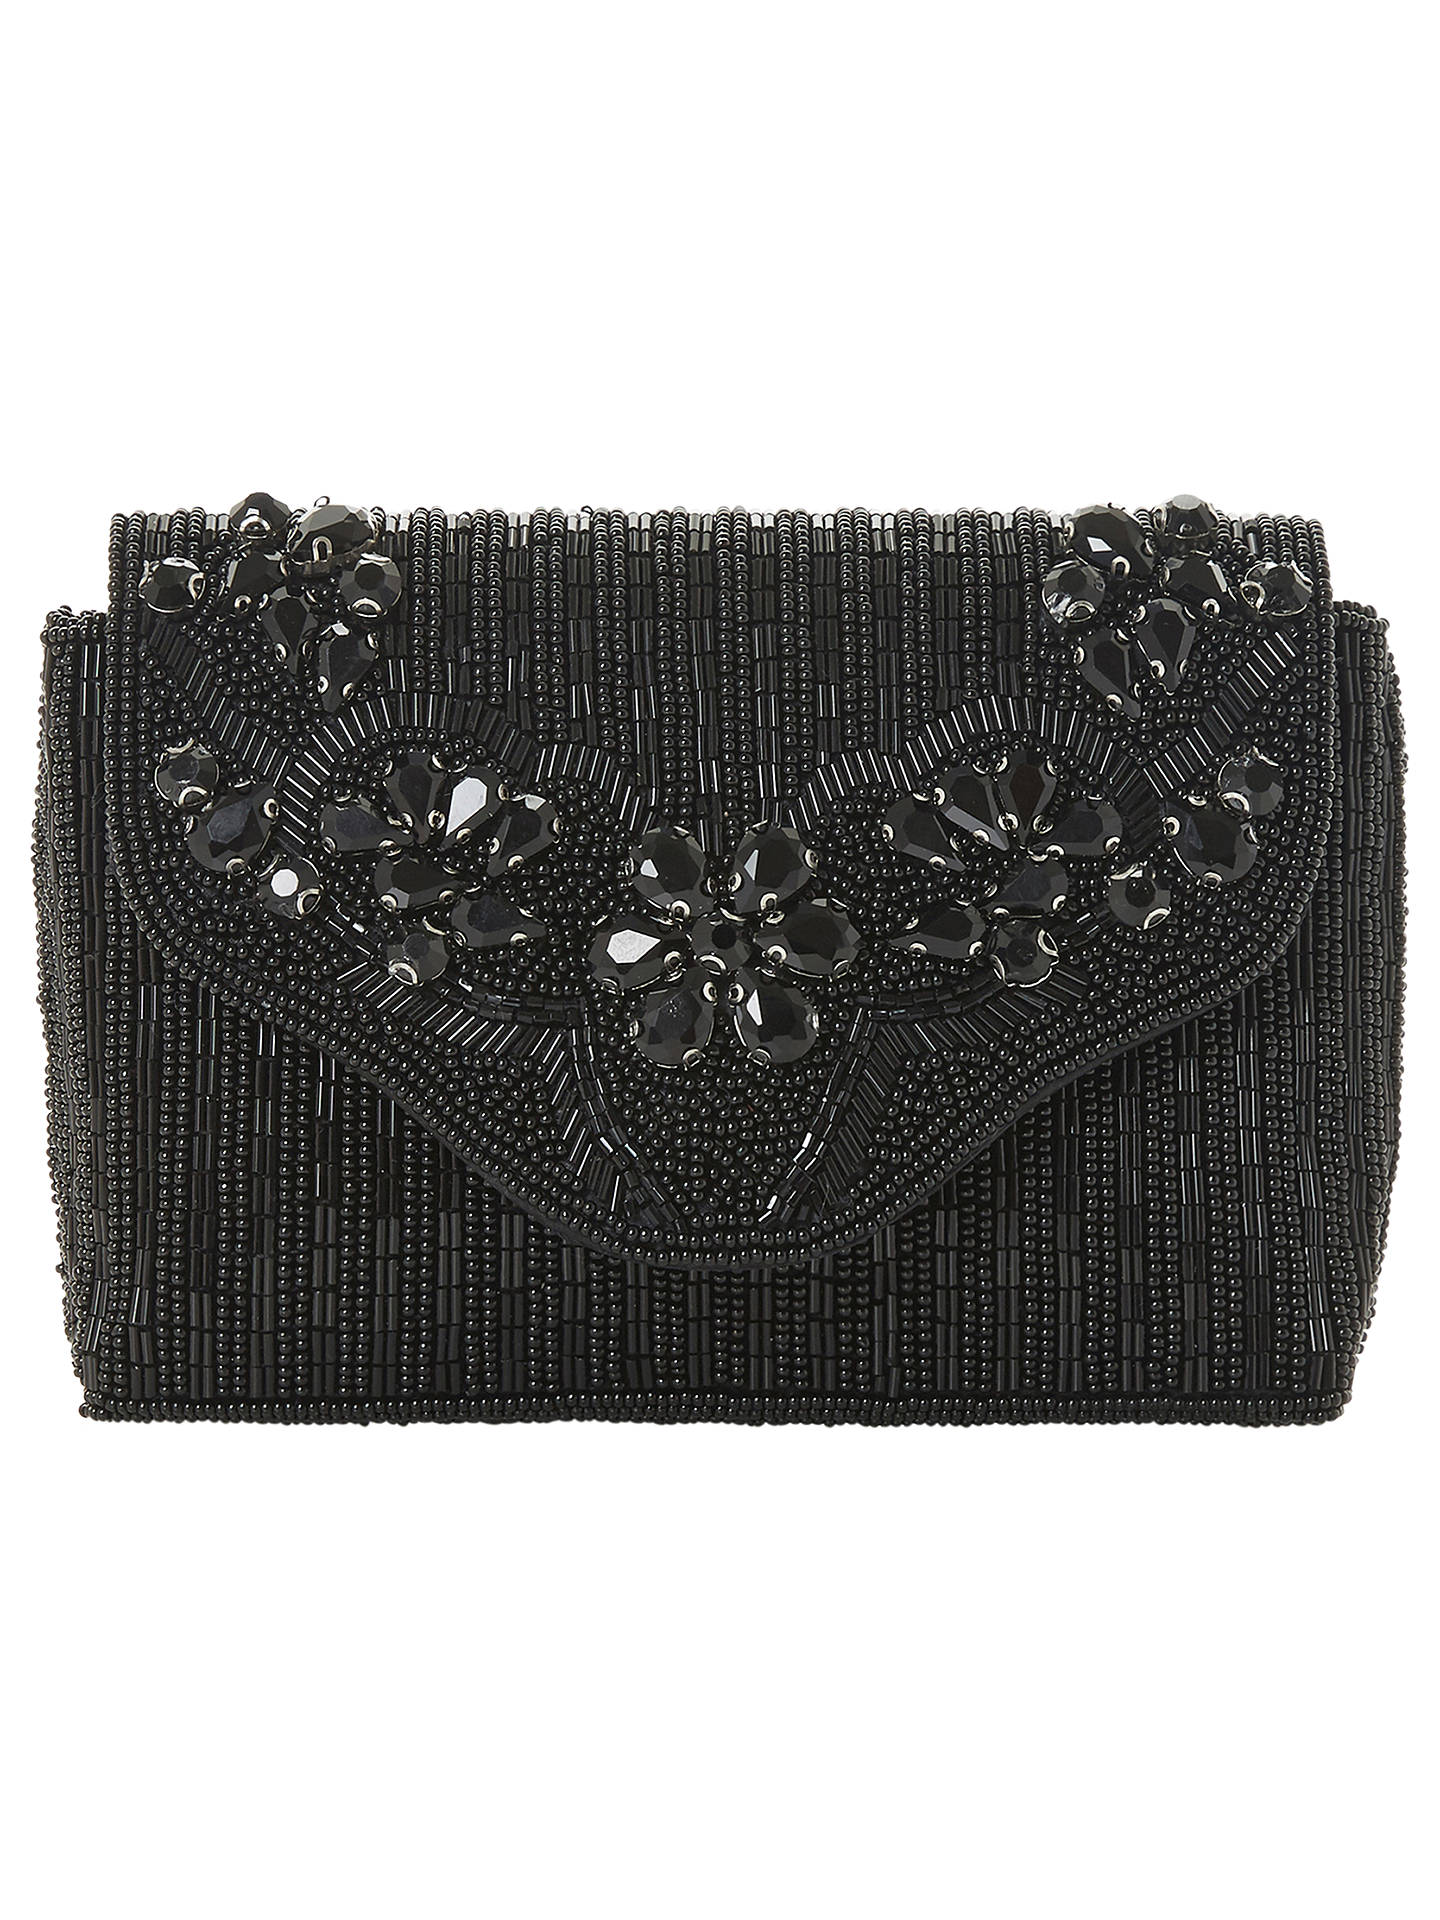 ae784ac3ceb Buy Dune Ekko Beaded Clutch Bag, Black Online at johnlewis.com ...